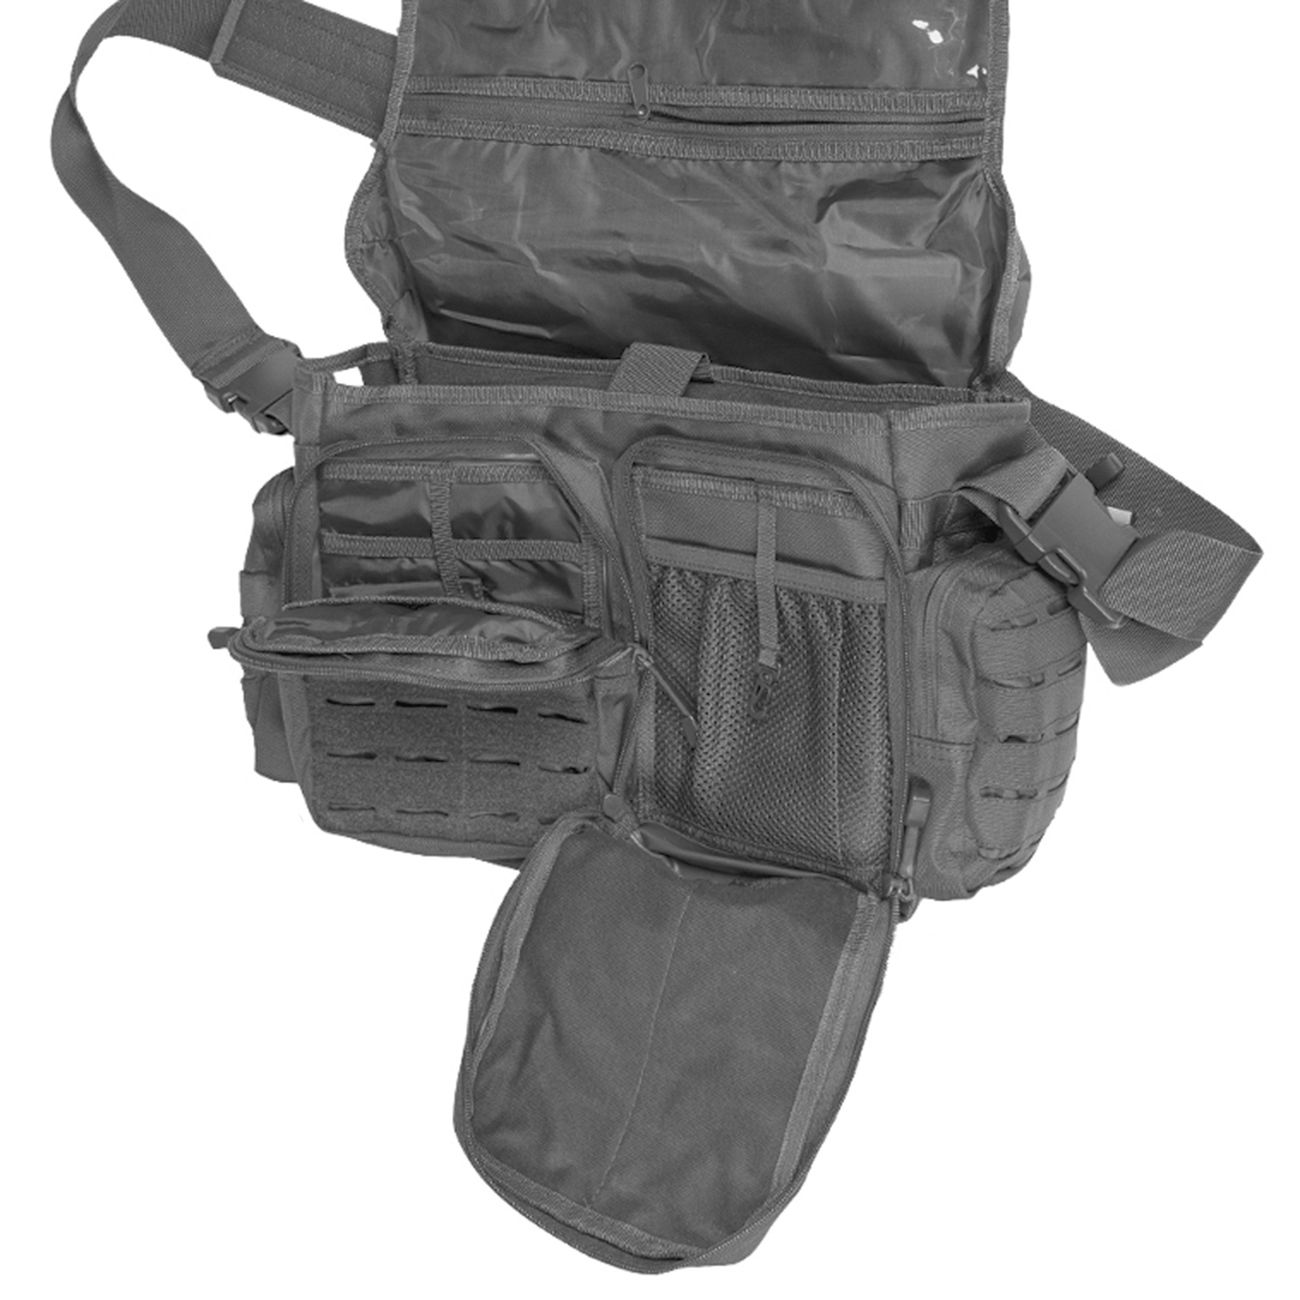 Mil-Tec Tactical Paracord Bag Large urban grey 2